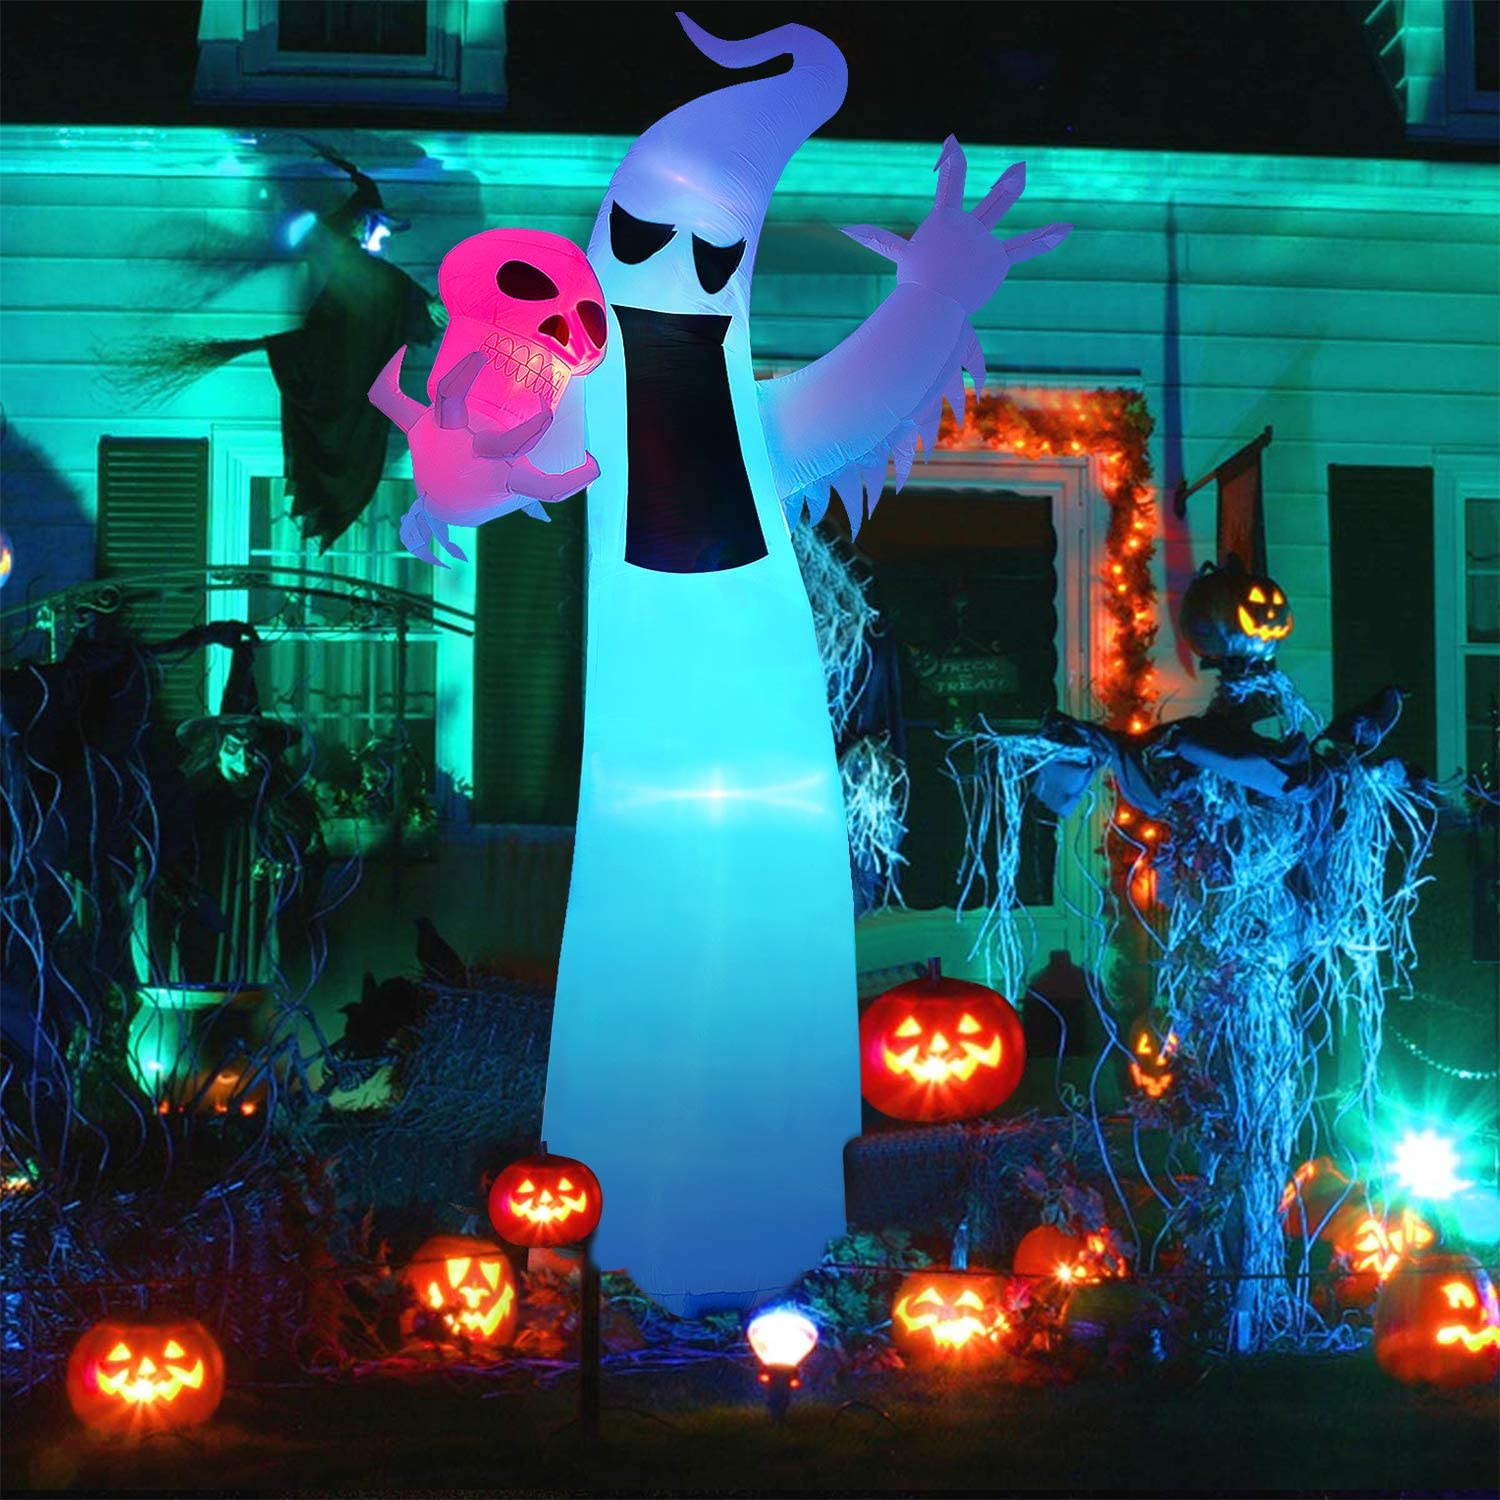 Lawn Decorations Garden Yard Outdoor 12 Ft Halloween Inflatables Ghost with Skull Blow Up Party Decorations with Color Changing LEDs for Halloween Party Indoor